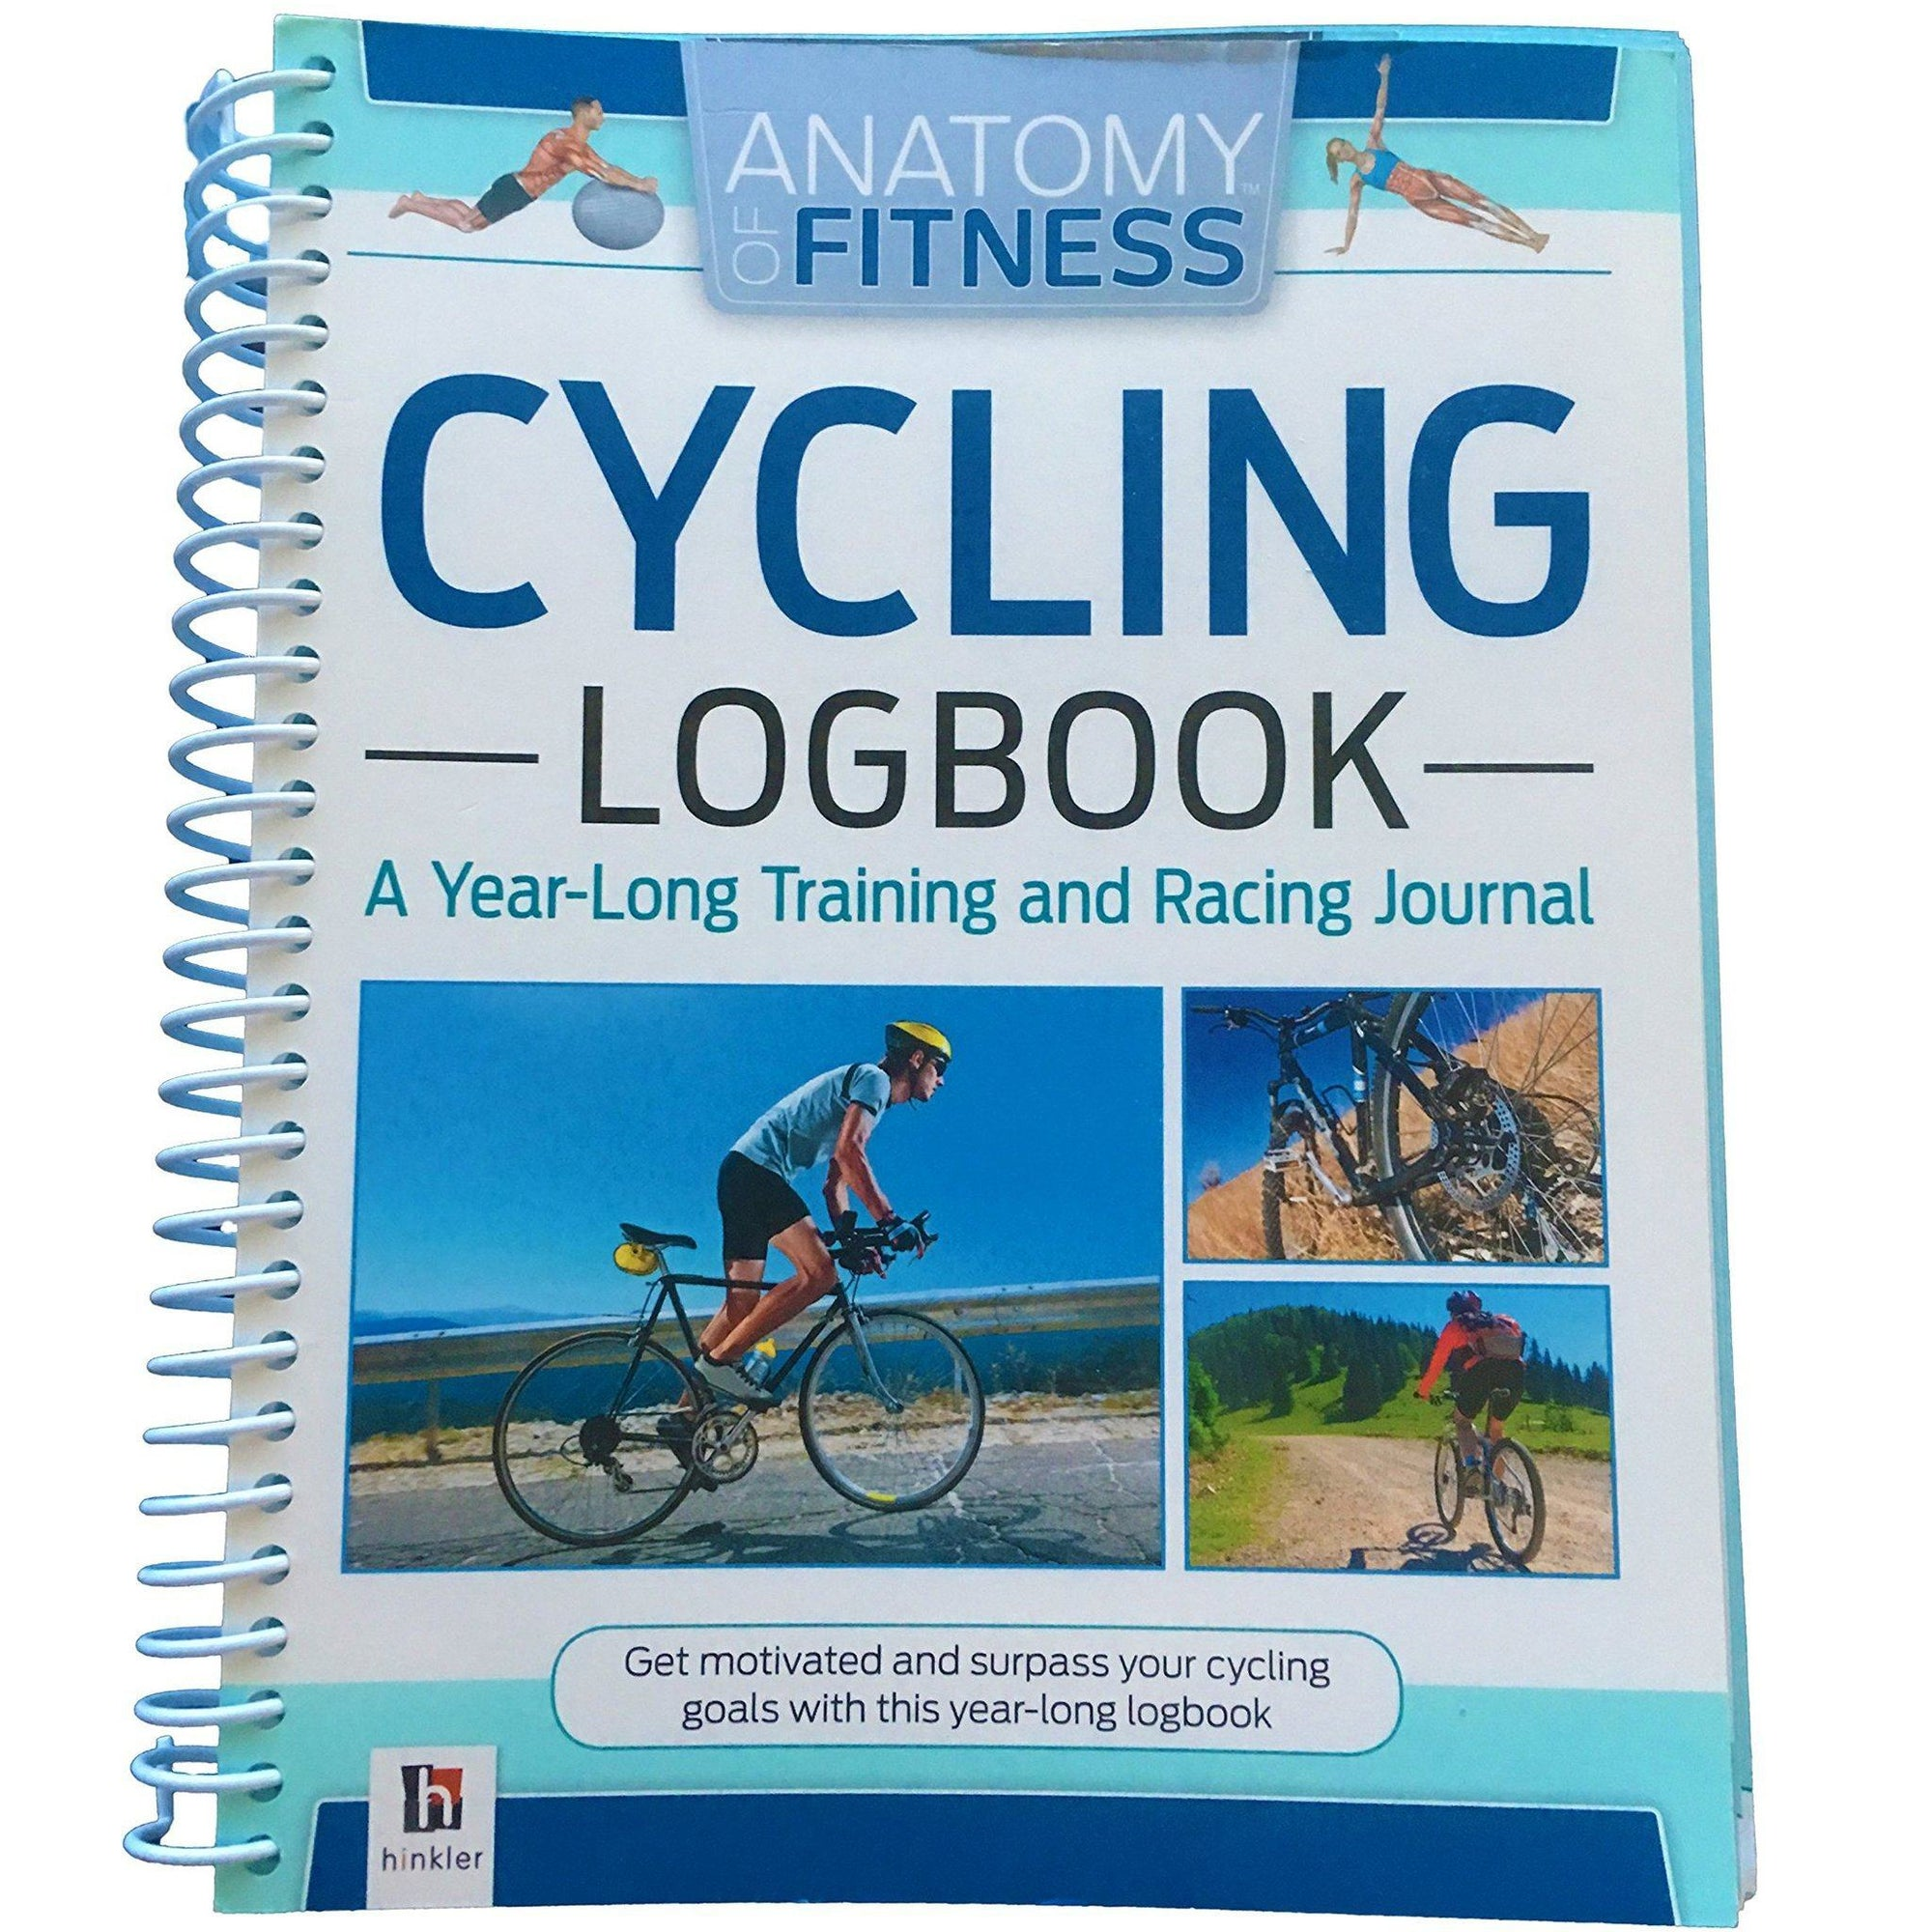 Anatomy of Fitness Cycling Logbook Books Hinkler Books